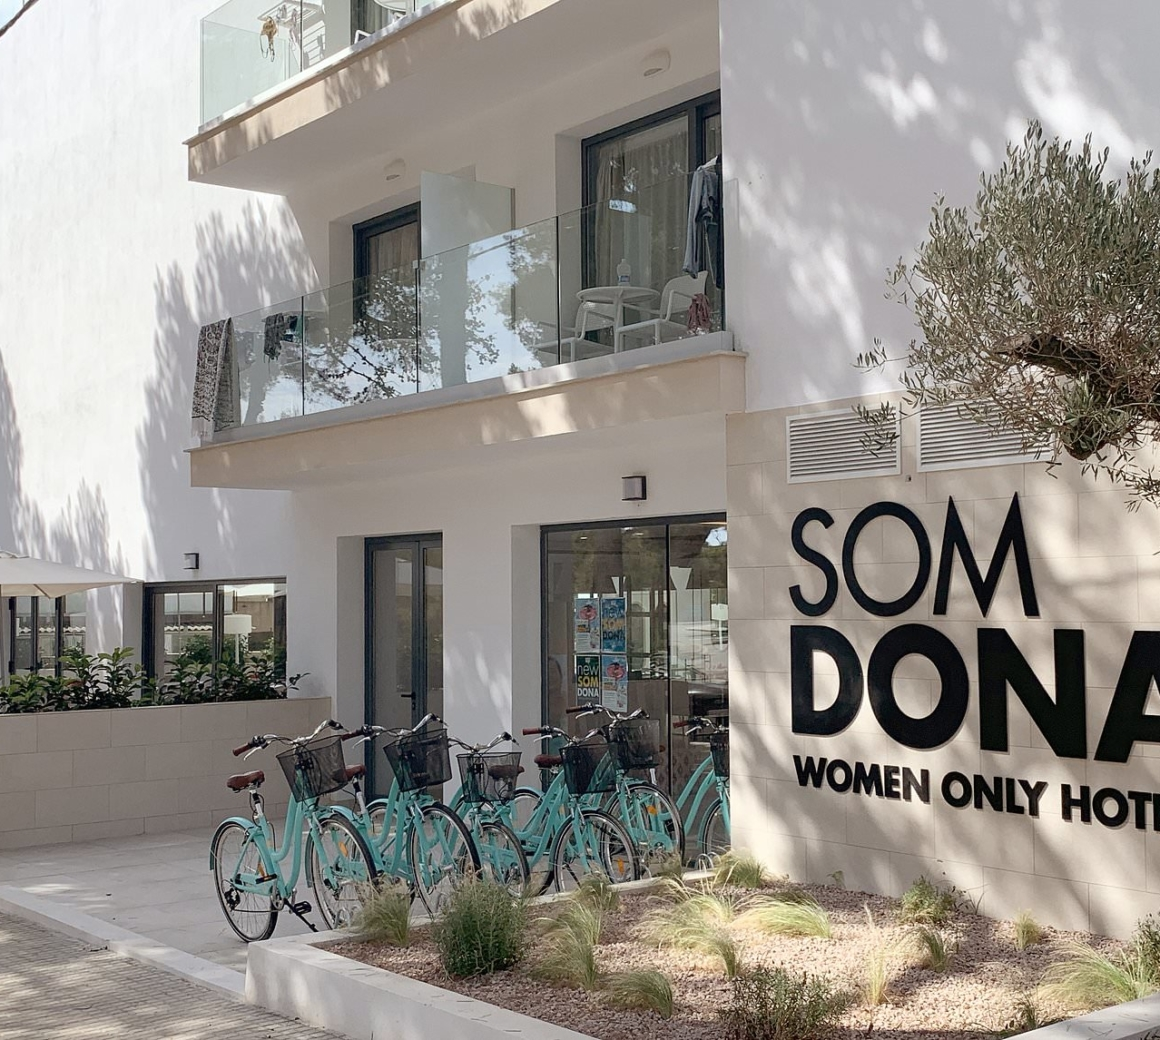 Som Dona is Spain's First Women Only Hotel